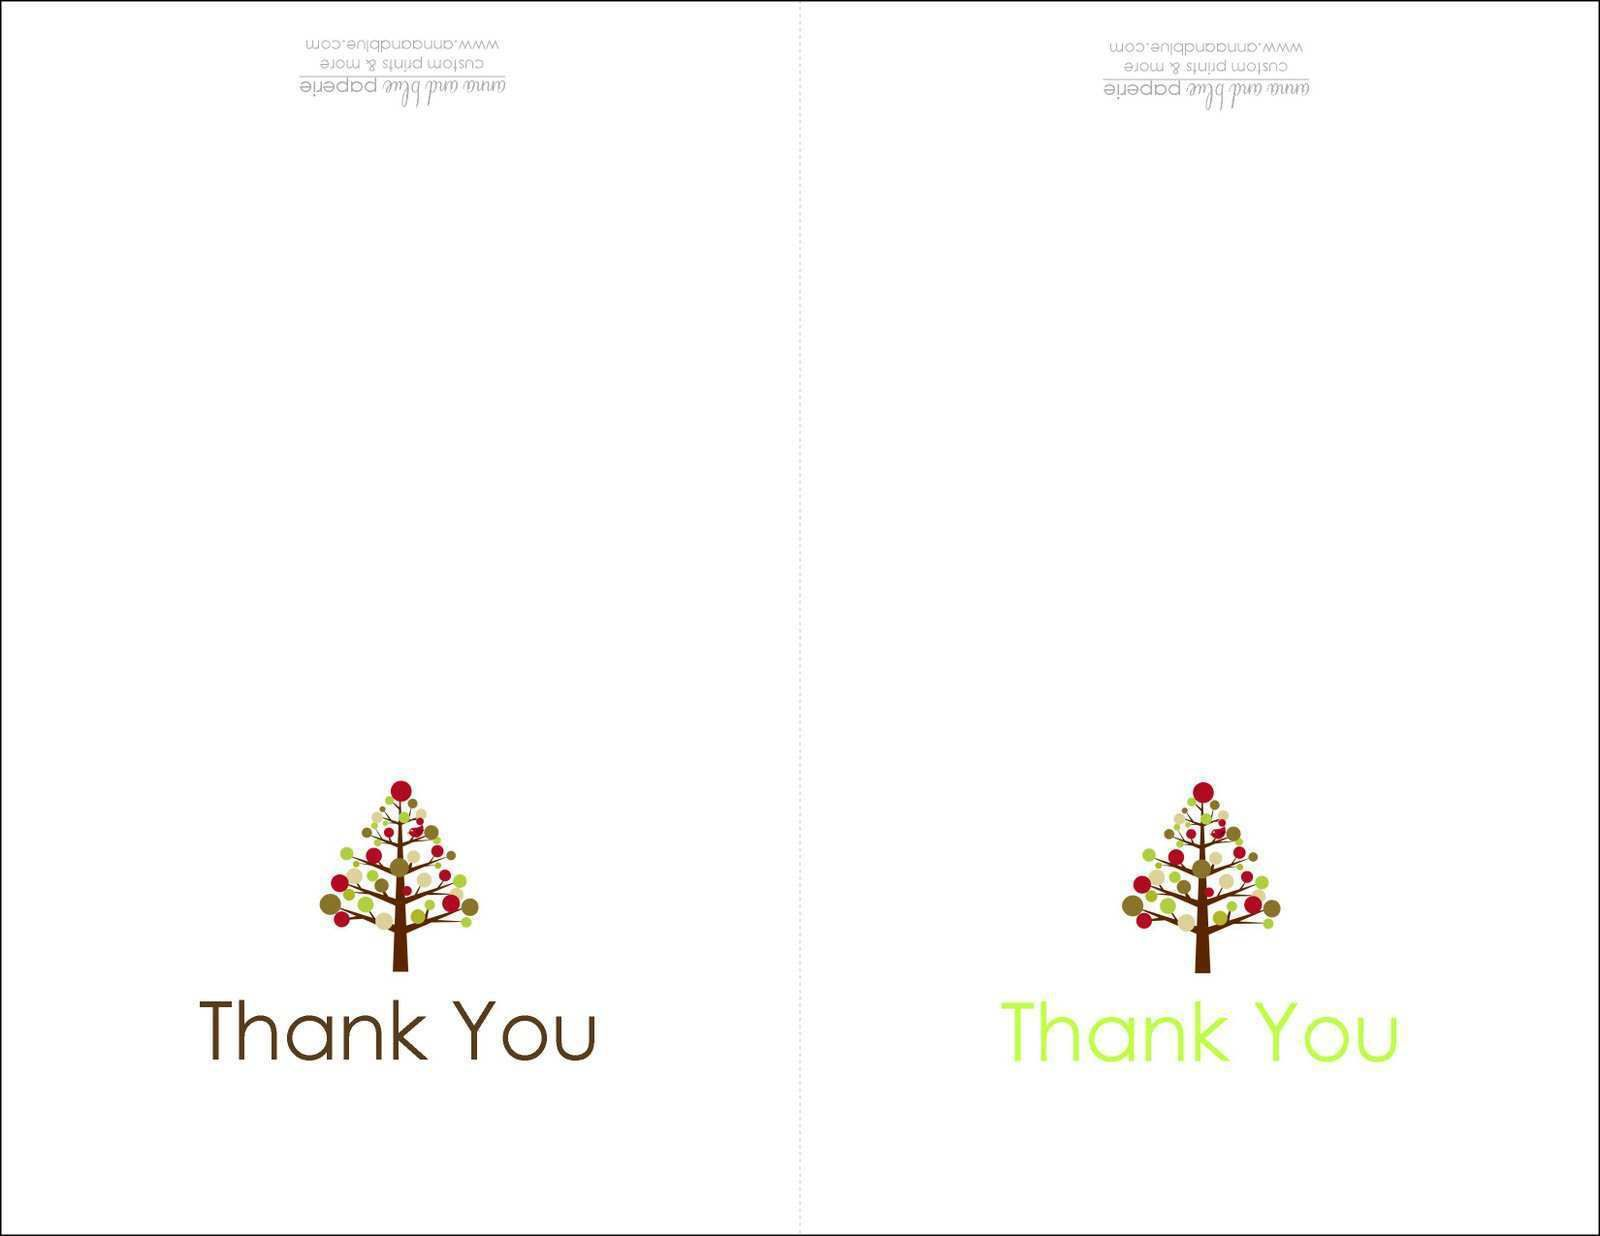 004 Dreaded Thank You Note Card Template Word Photo Full